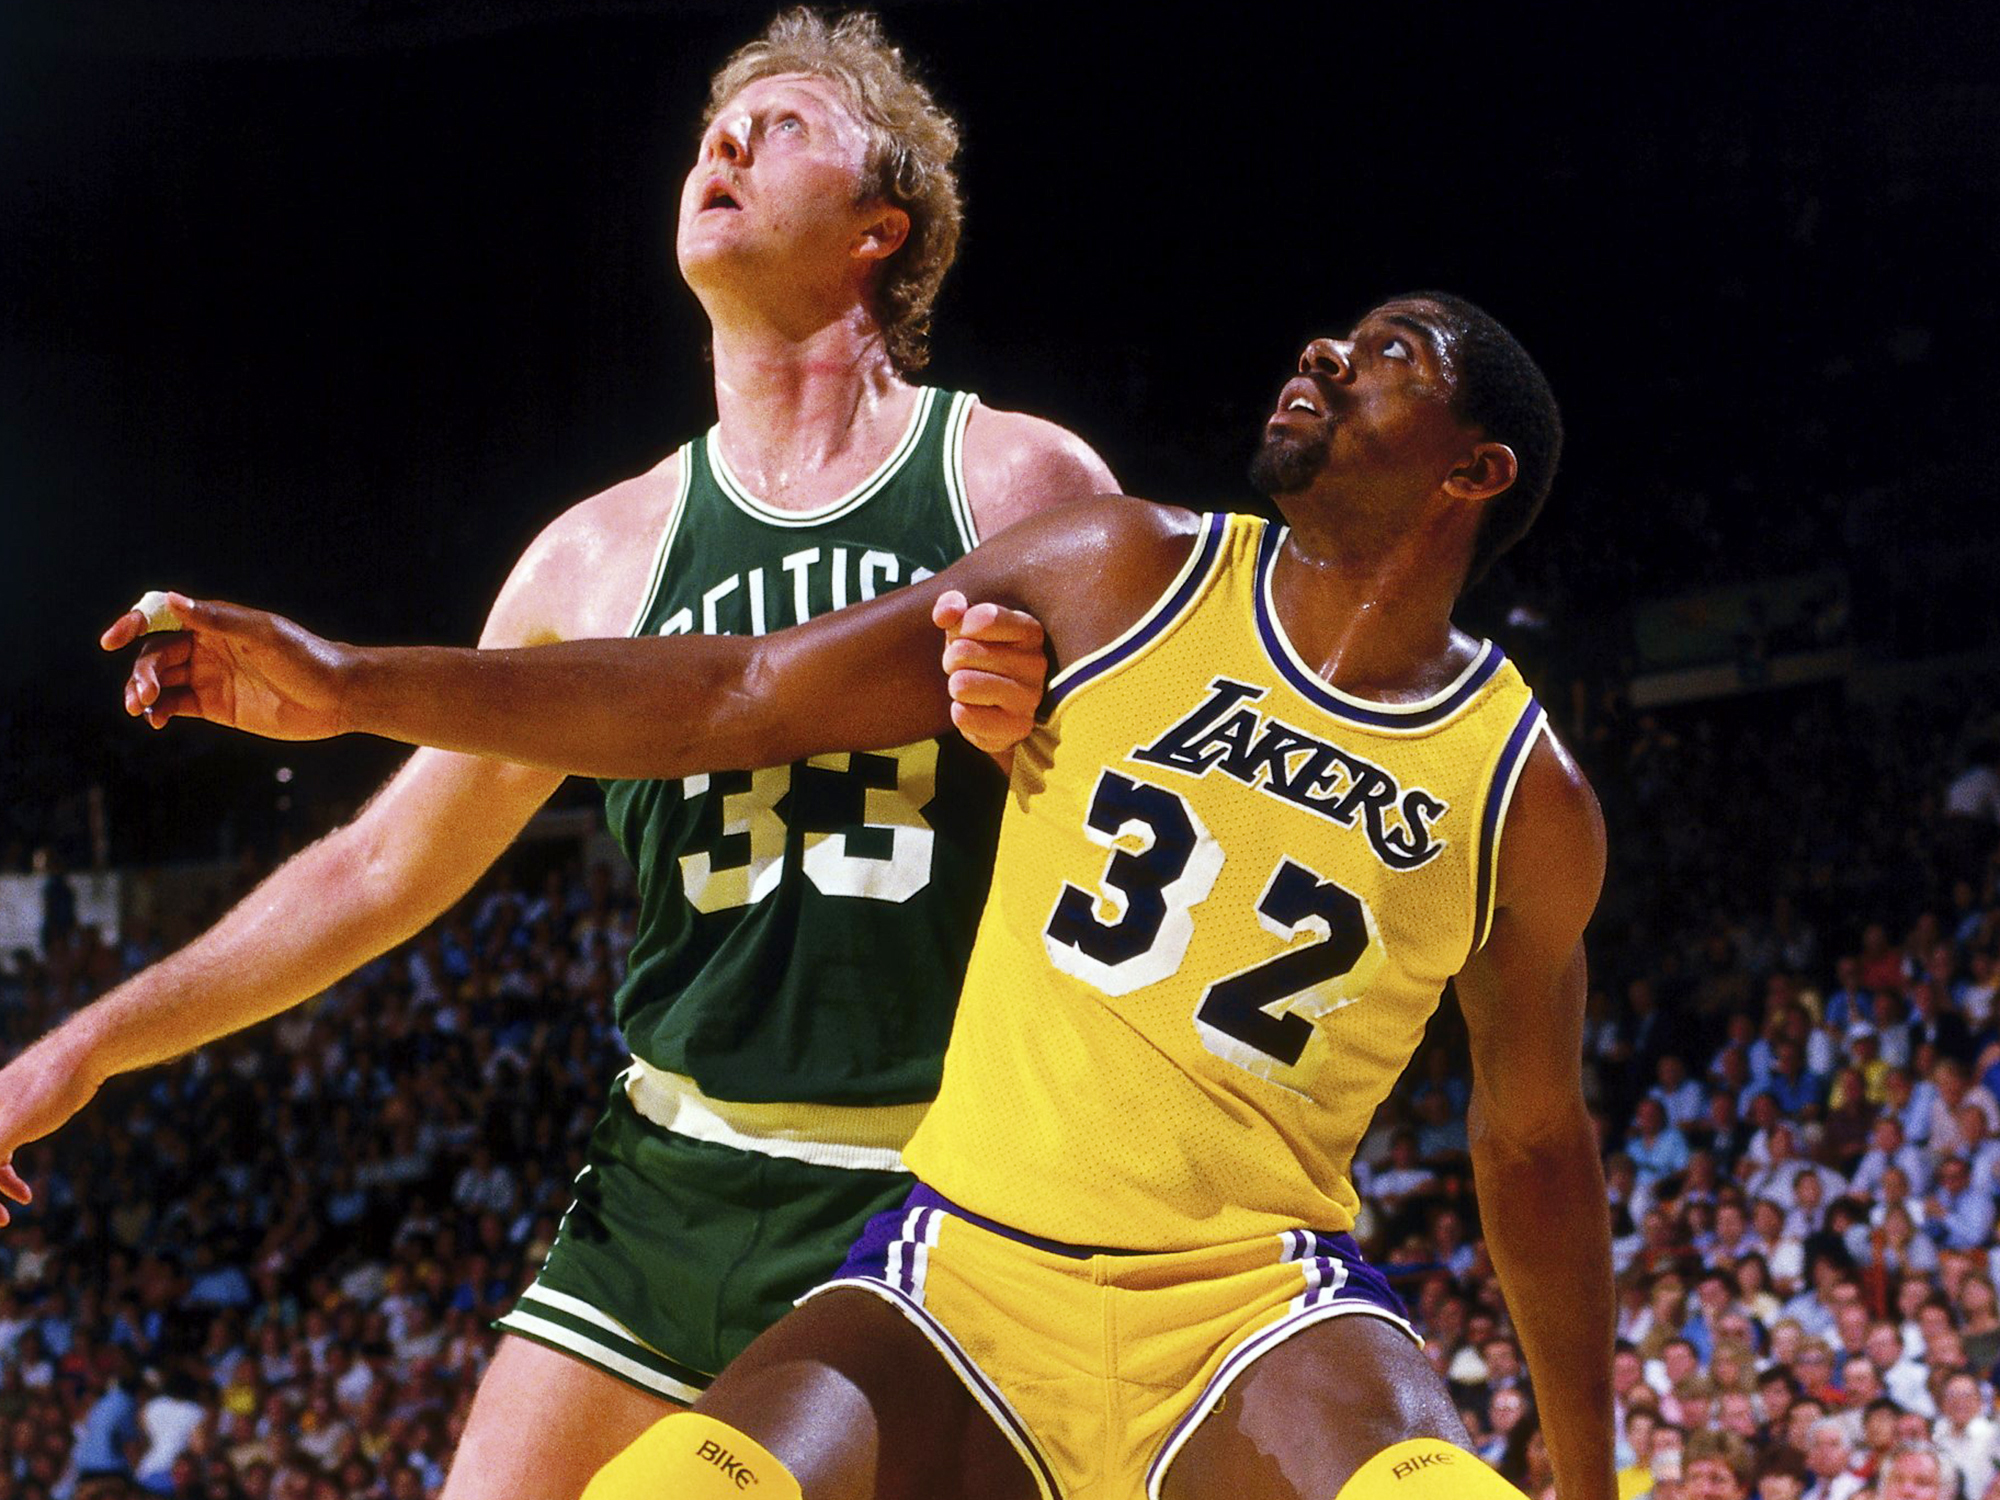 New ESPN 30 for 30 (2 part series) Celtics vs. Lakers Rivalry